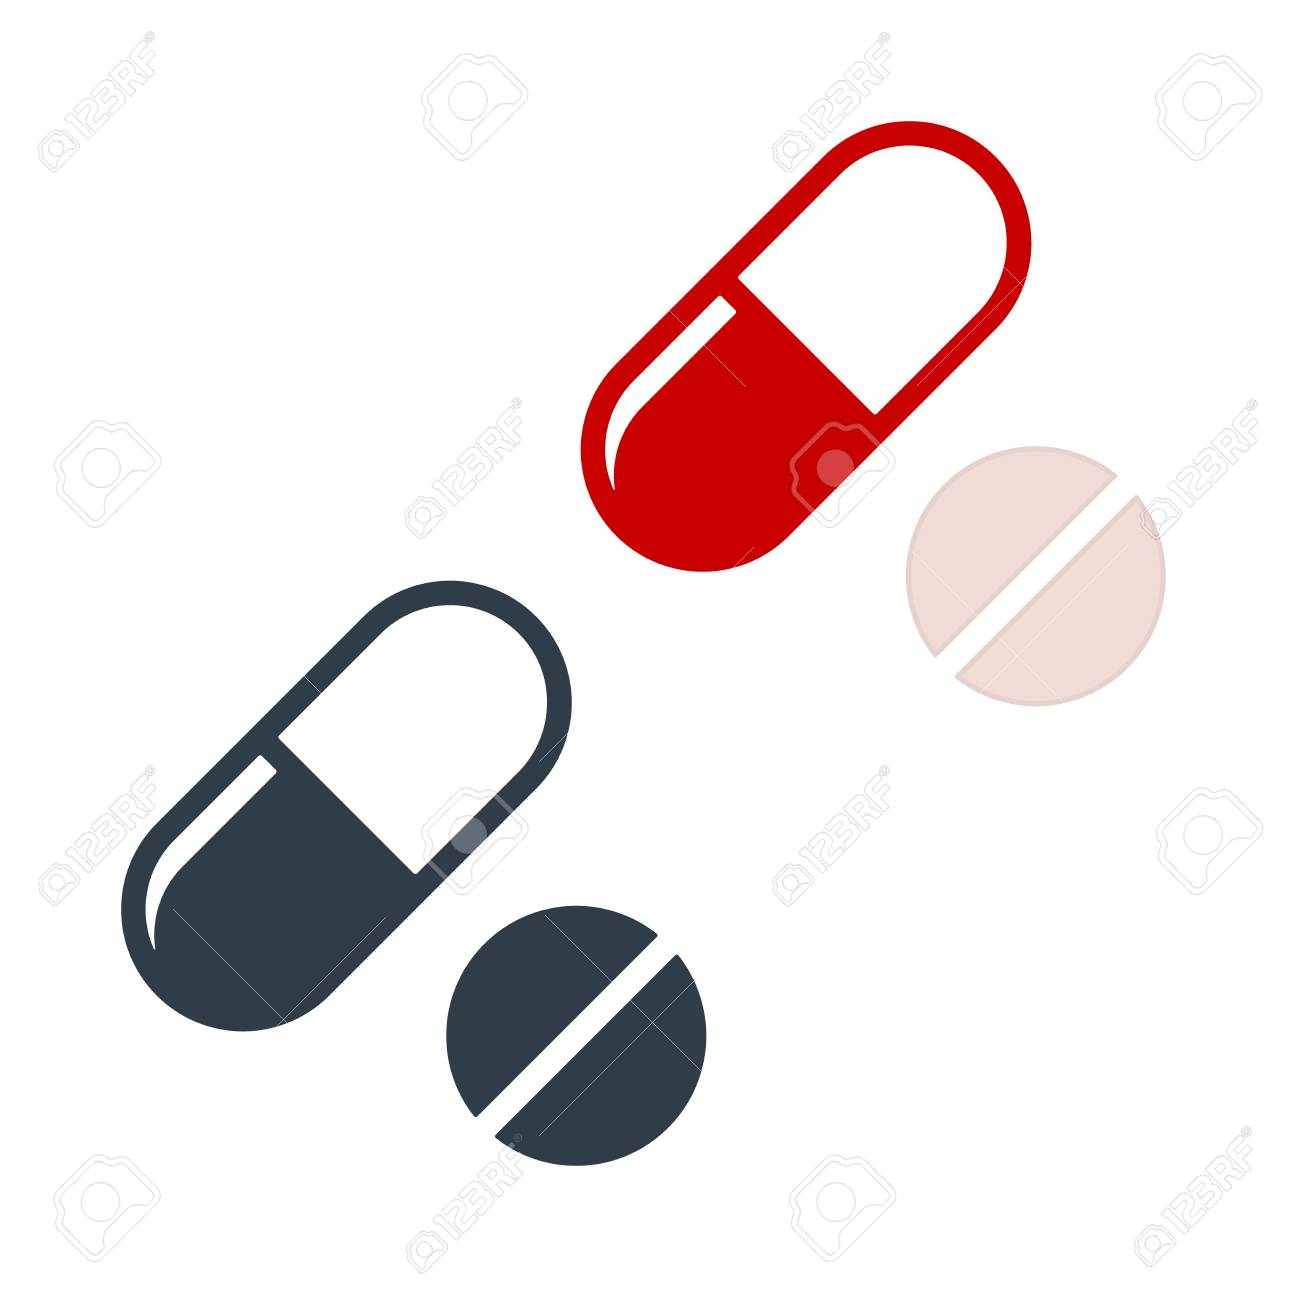 pills flat icon on white background drug vector icon royalty free cliparts vectors and stock illustration image 126084050 123rf com